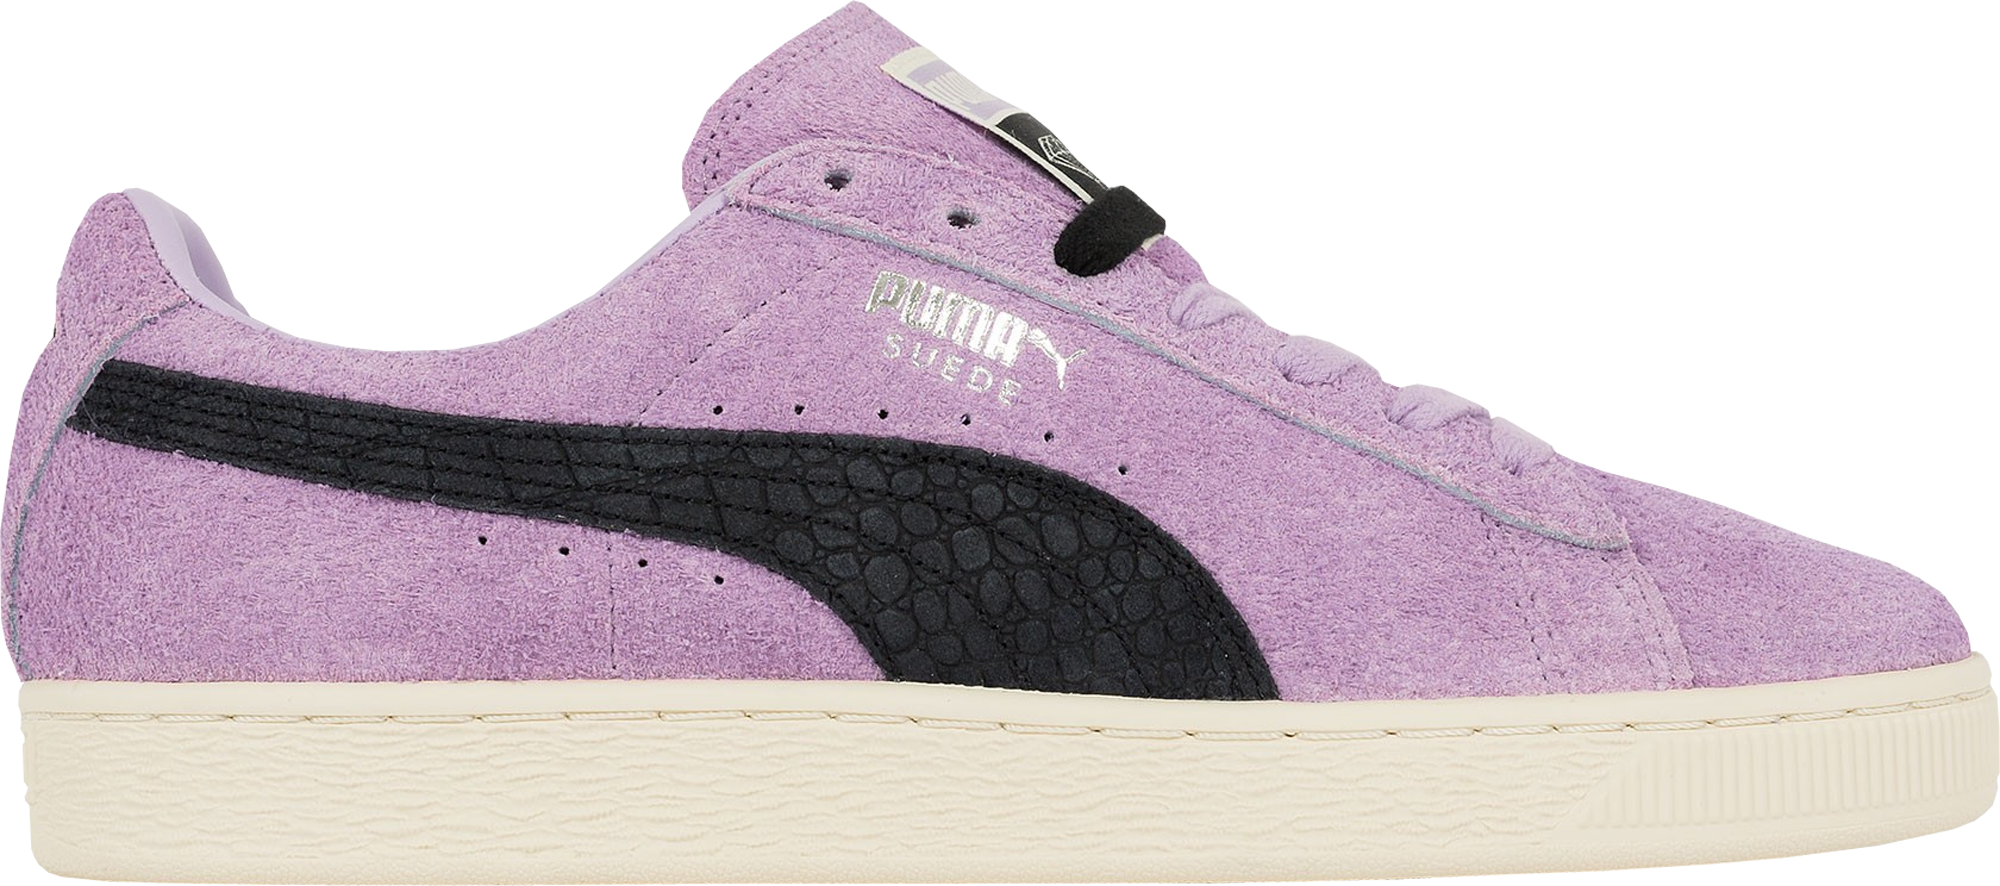 Puma Suede Diamond Supply Co. Orchid